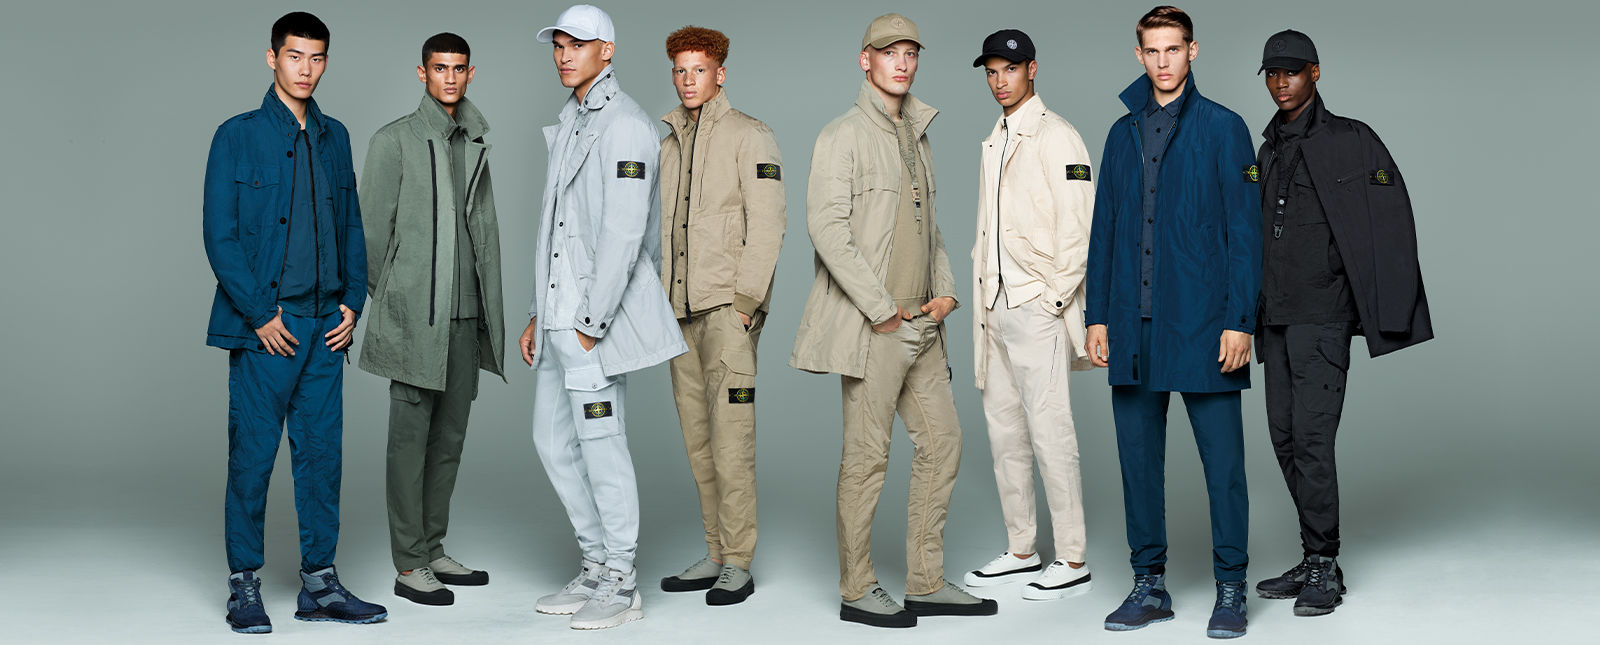 Eight models wearing monochrome outfits in dark blue, green, gray, tan, cream and black, composed of different styles of jackets, pants, shoes and caps.